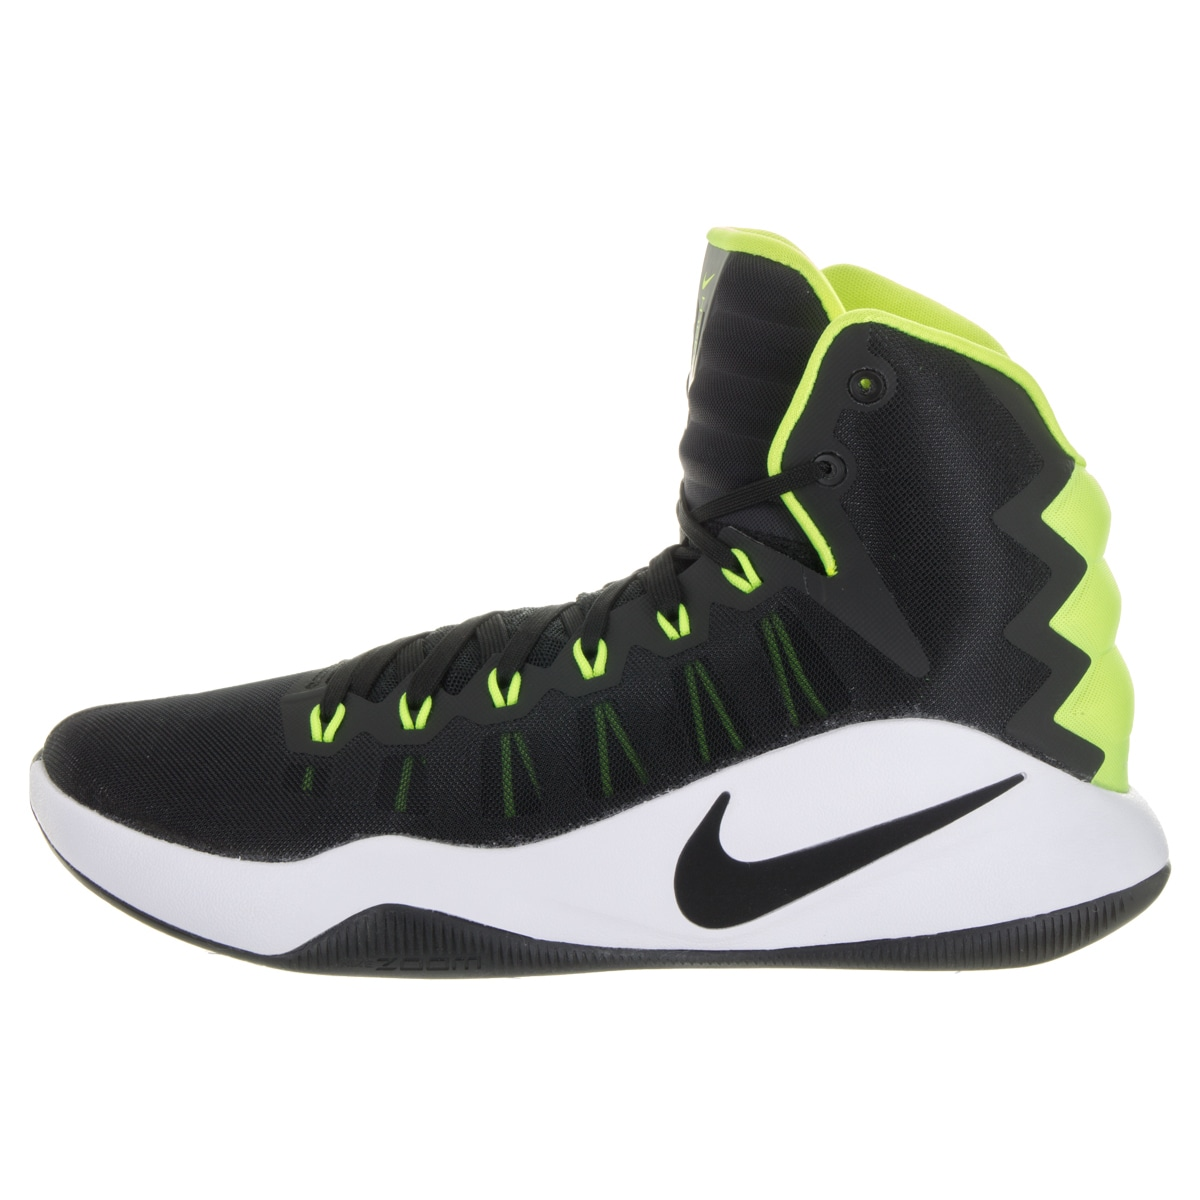 6620f6ca0e0 Shop Nike Men s Hyperdunk 2016 Black Synthetic Leather Basketball Shoes -  Free Shipping Today - Overstock - 13477919